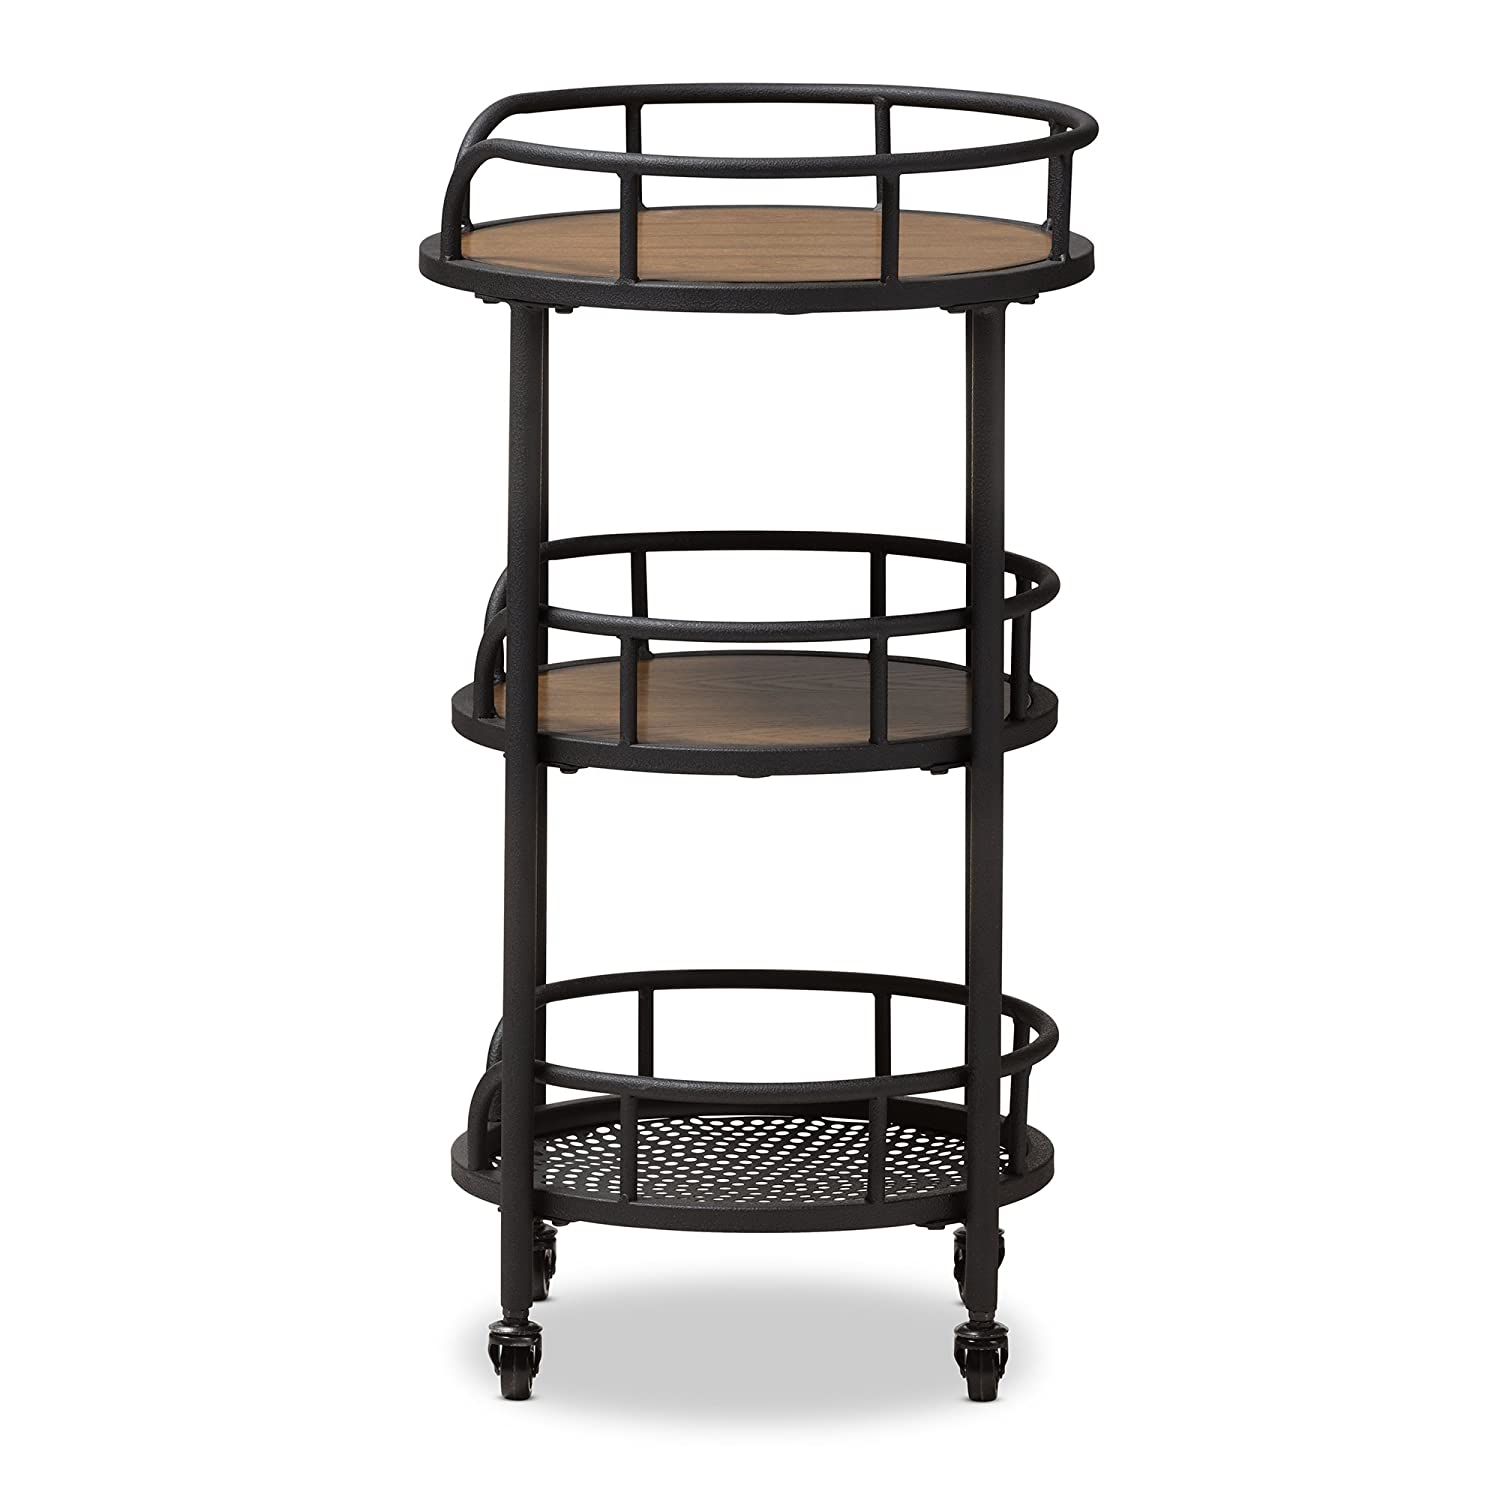 Baxton Studio Trolleys /& Carts Black//Walnut Brown Wholesale Interiors 424-7508-AMZ